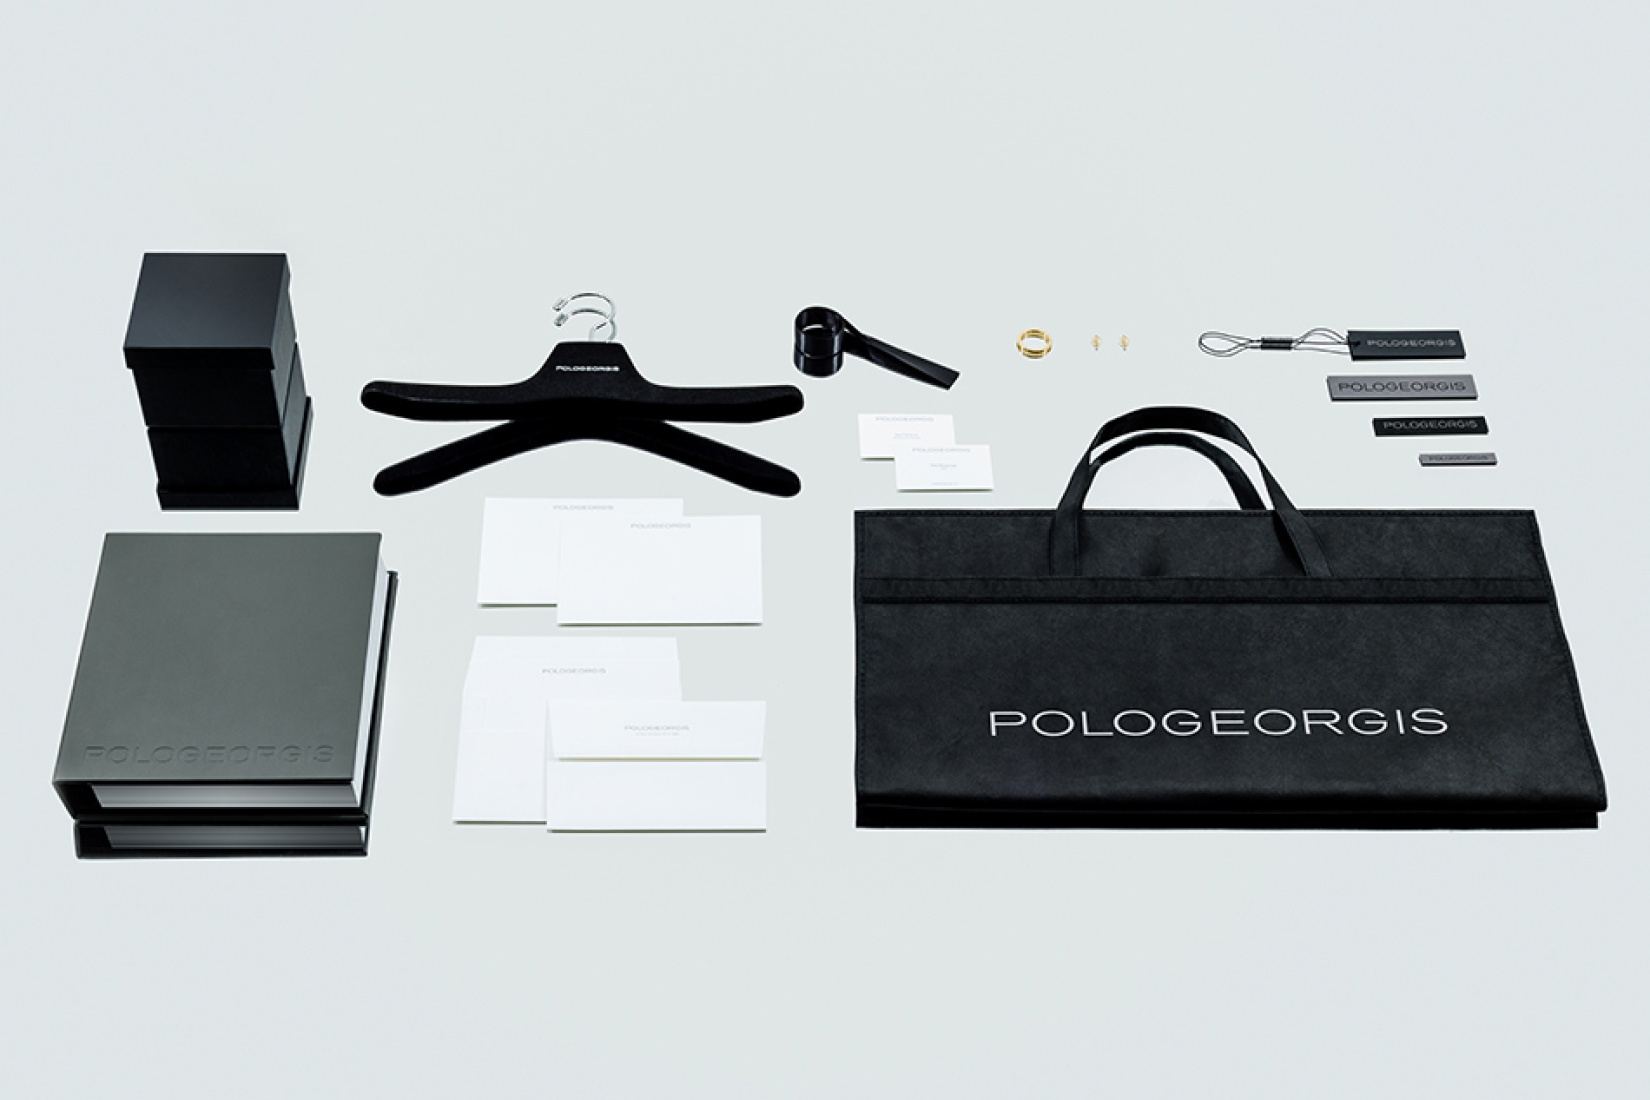 New brand logo and identity created by DTE Studio for Pologeorgis.